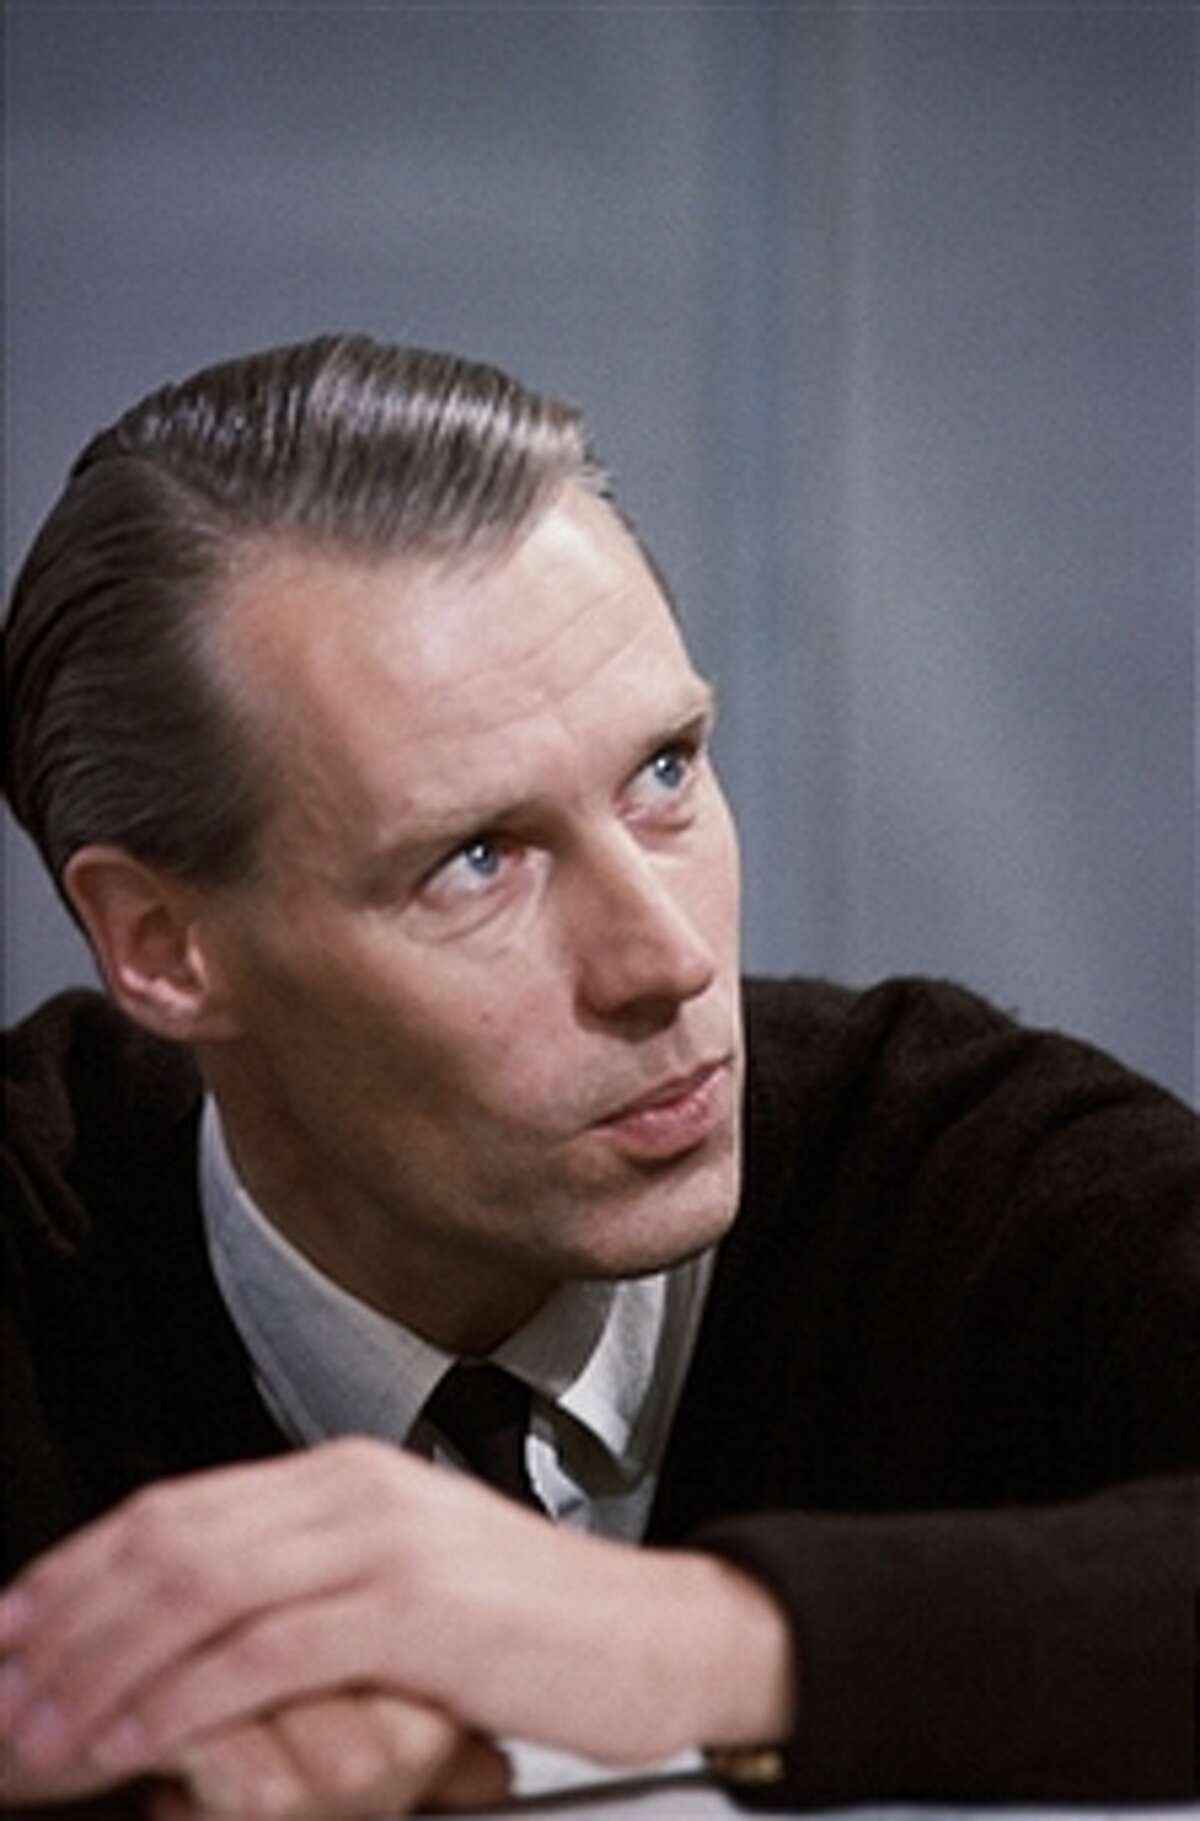 Beatles record producer George Martin was a classically trained musician, arranger and producer of comedy records. His impact on the Beatles sound was a key element in the band's success.